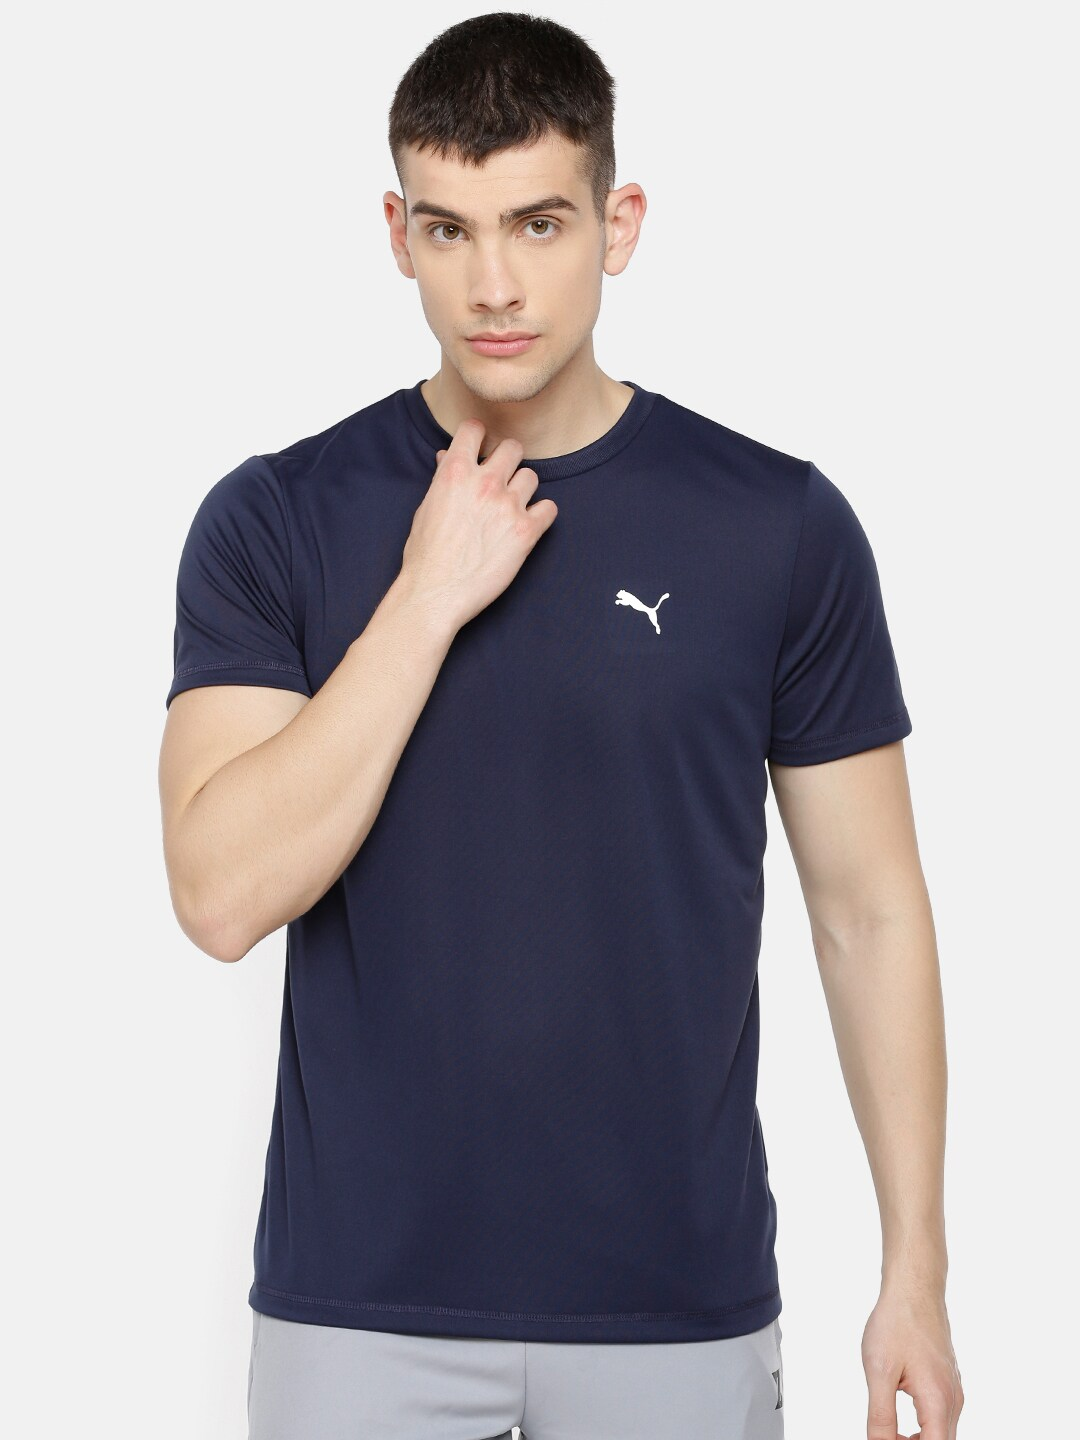 7f3355ea2d9 Men Sportswear - Buy Sportswear for Men Online in India - Myntra